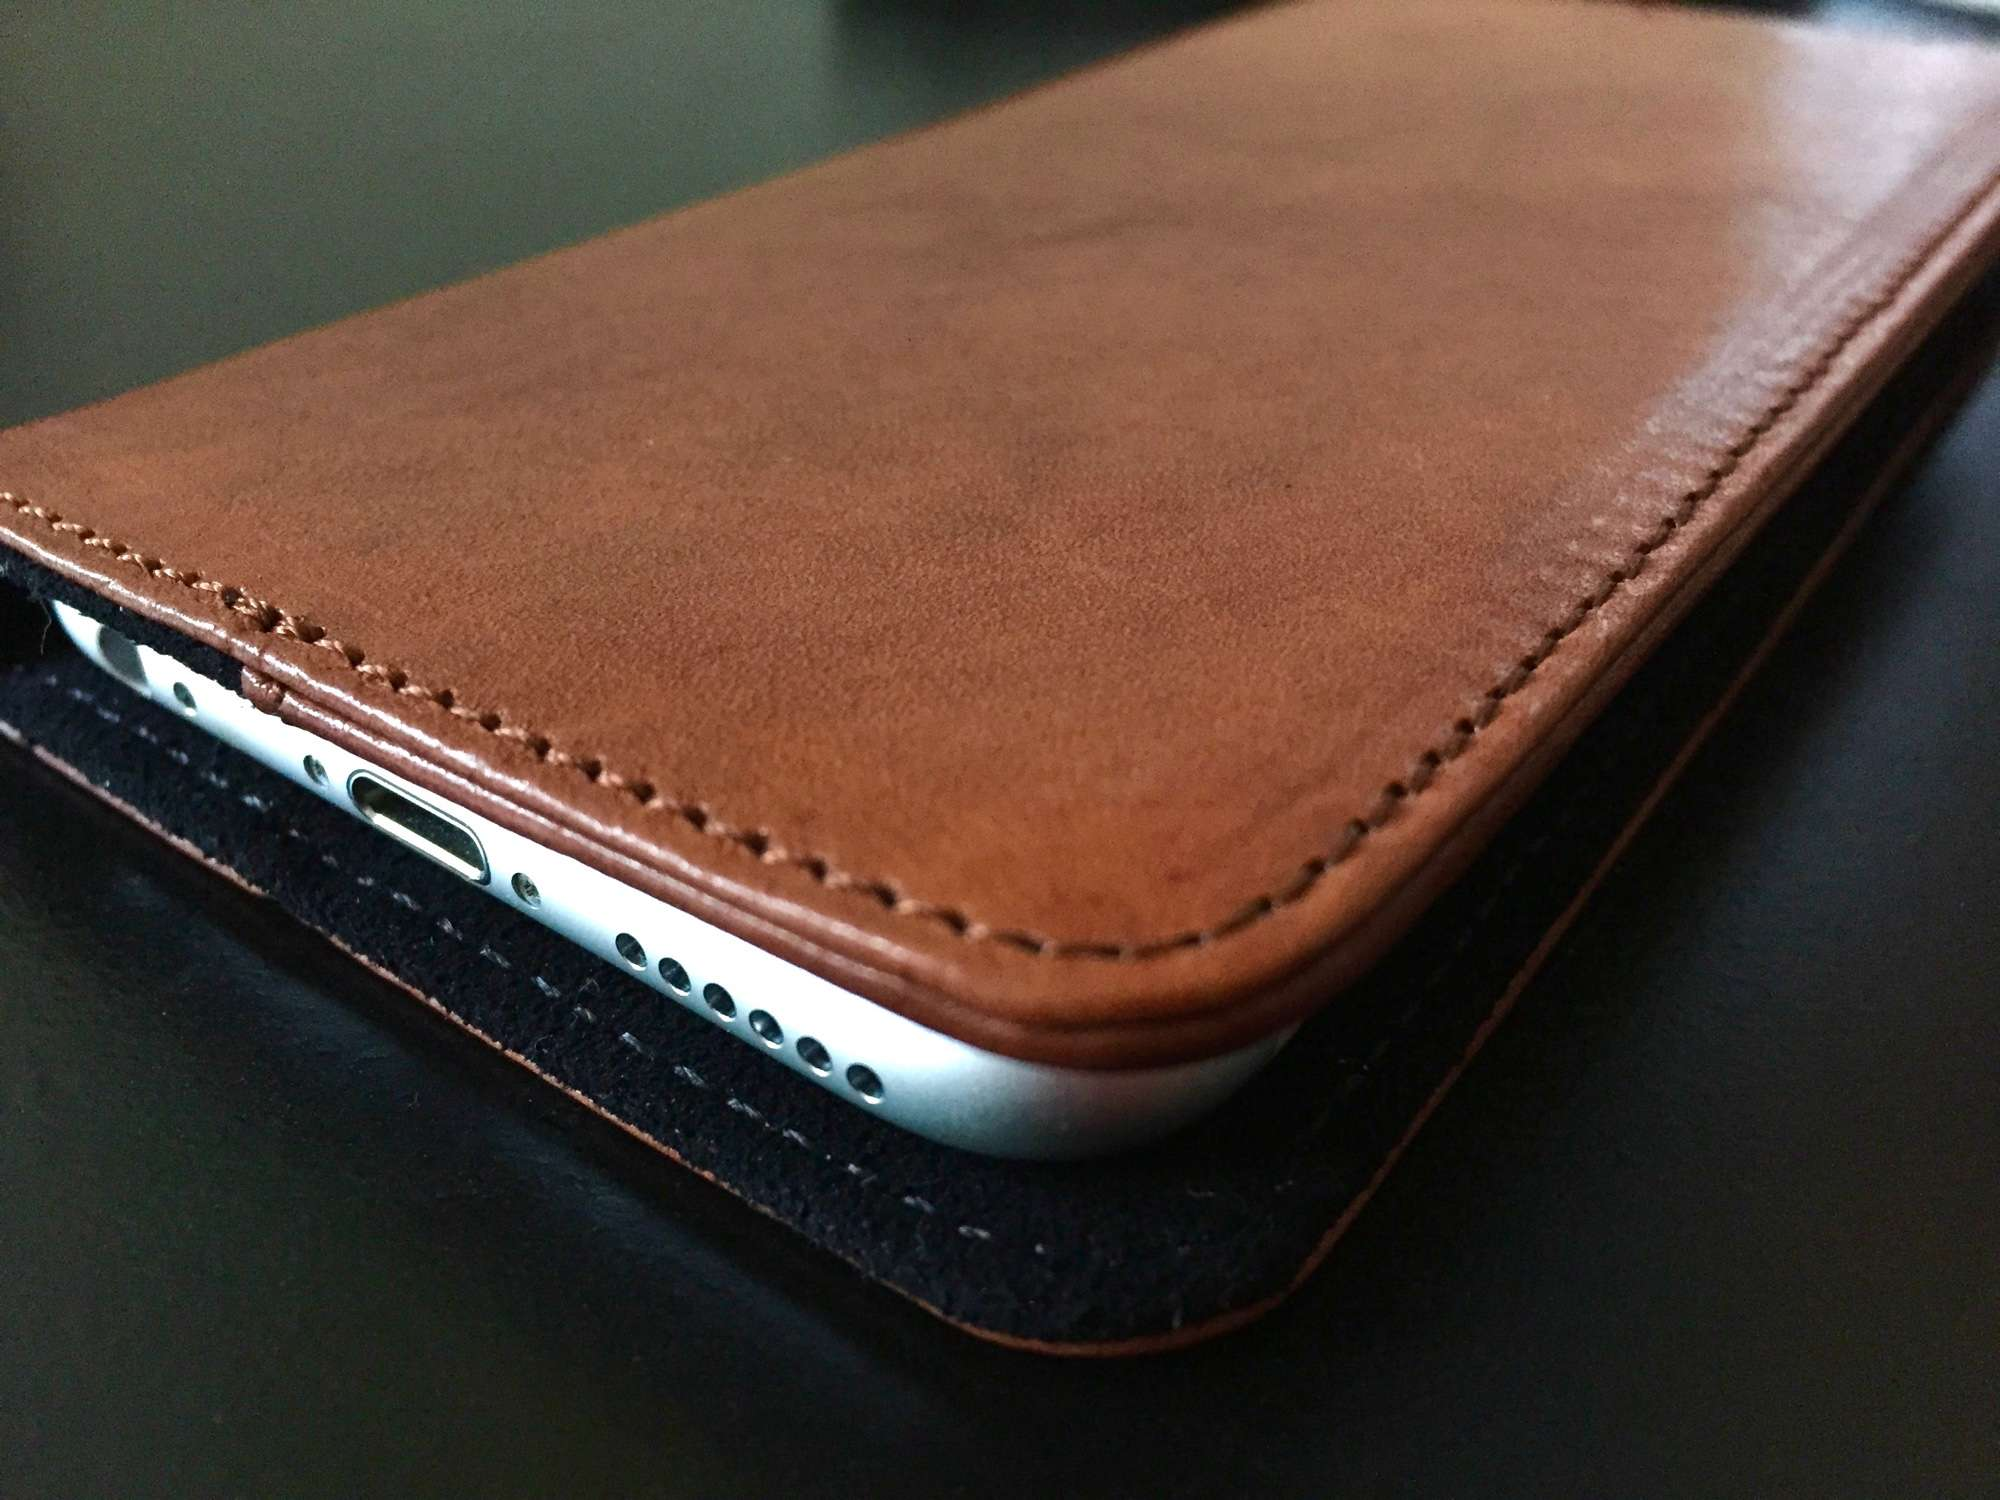 info for 9ad98 166f1 Clever leather wallet case can turn iPhone 6s into a dock